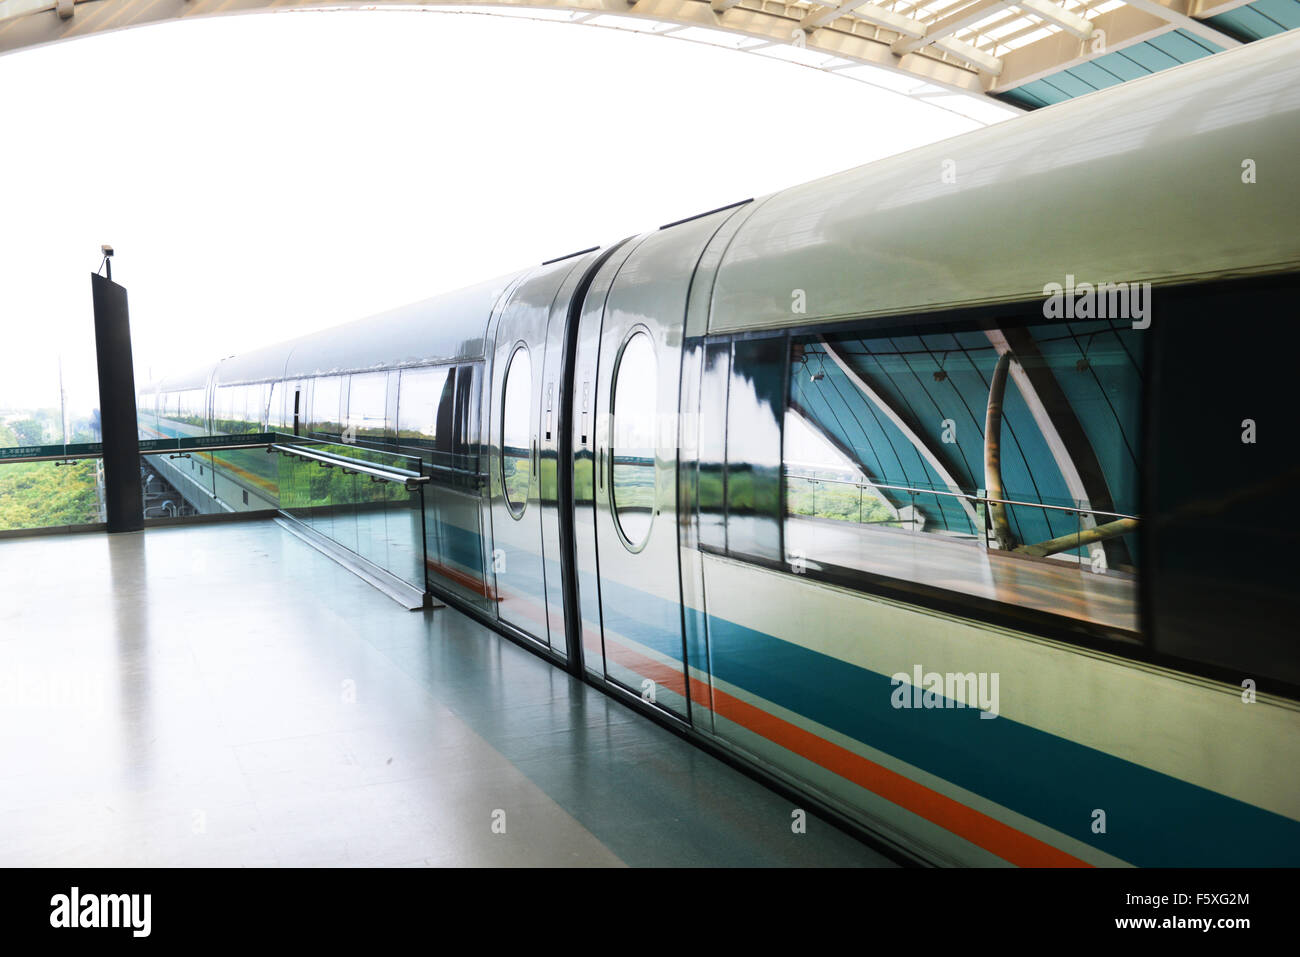 The Maglev train in Shanghai. - Stock Image